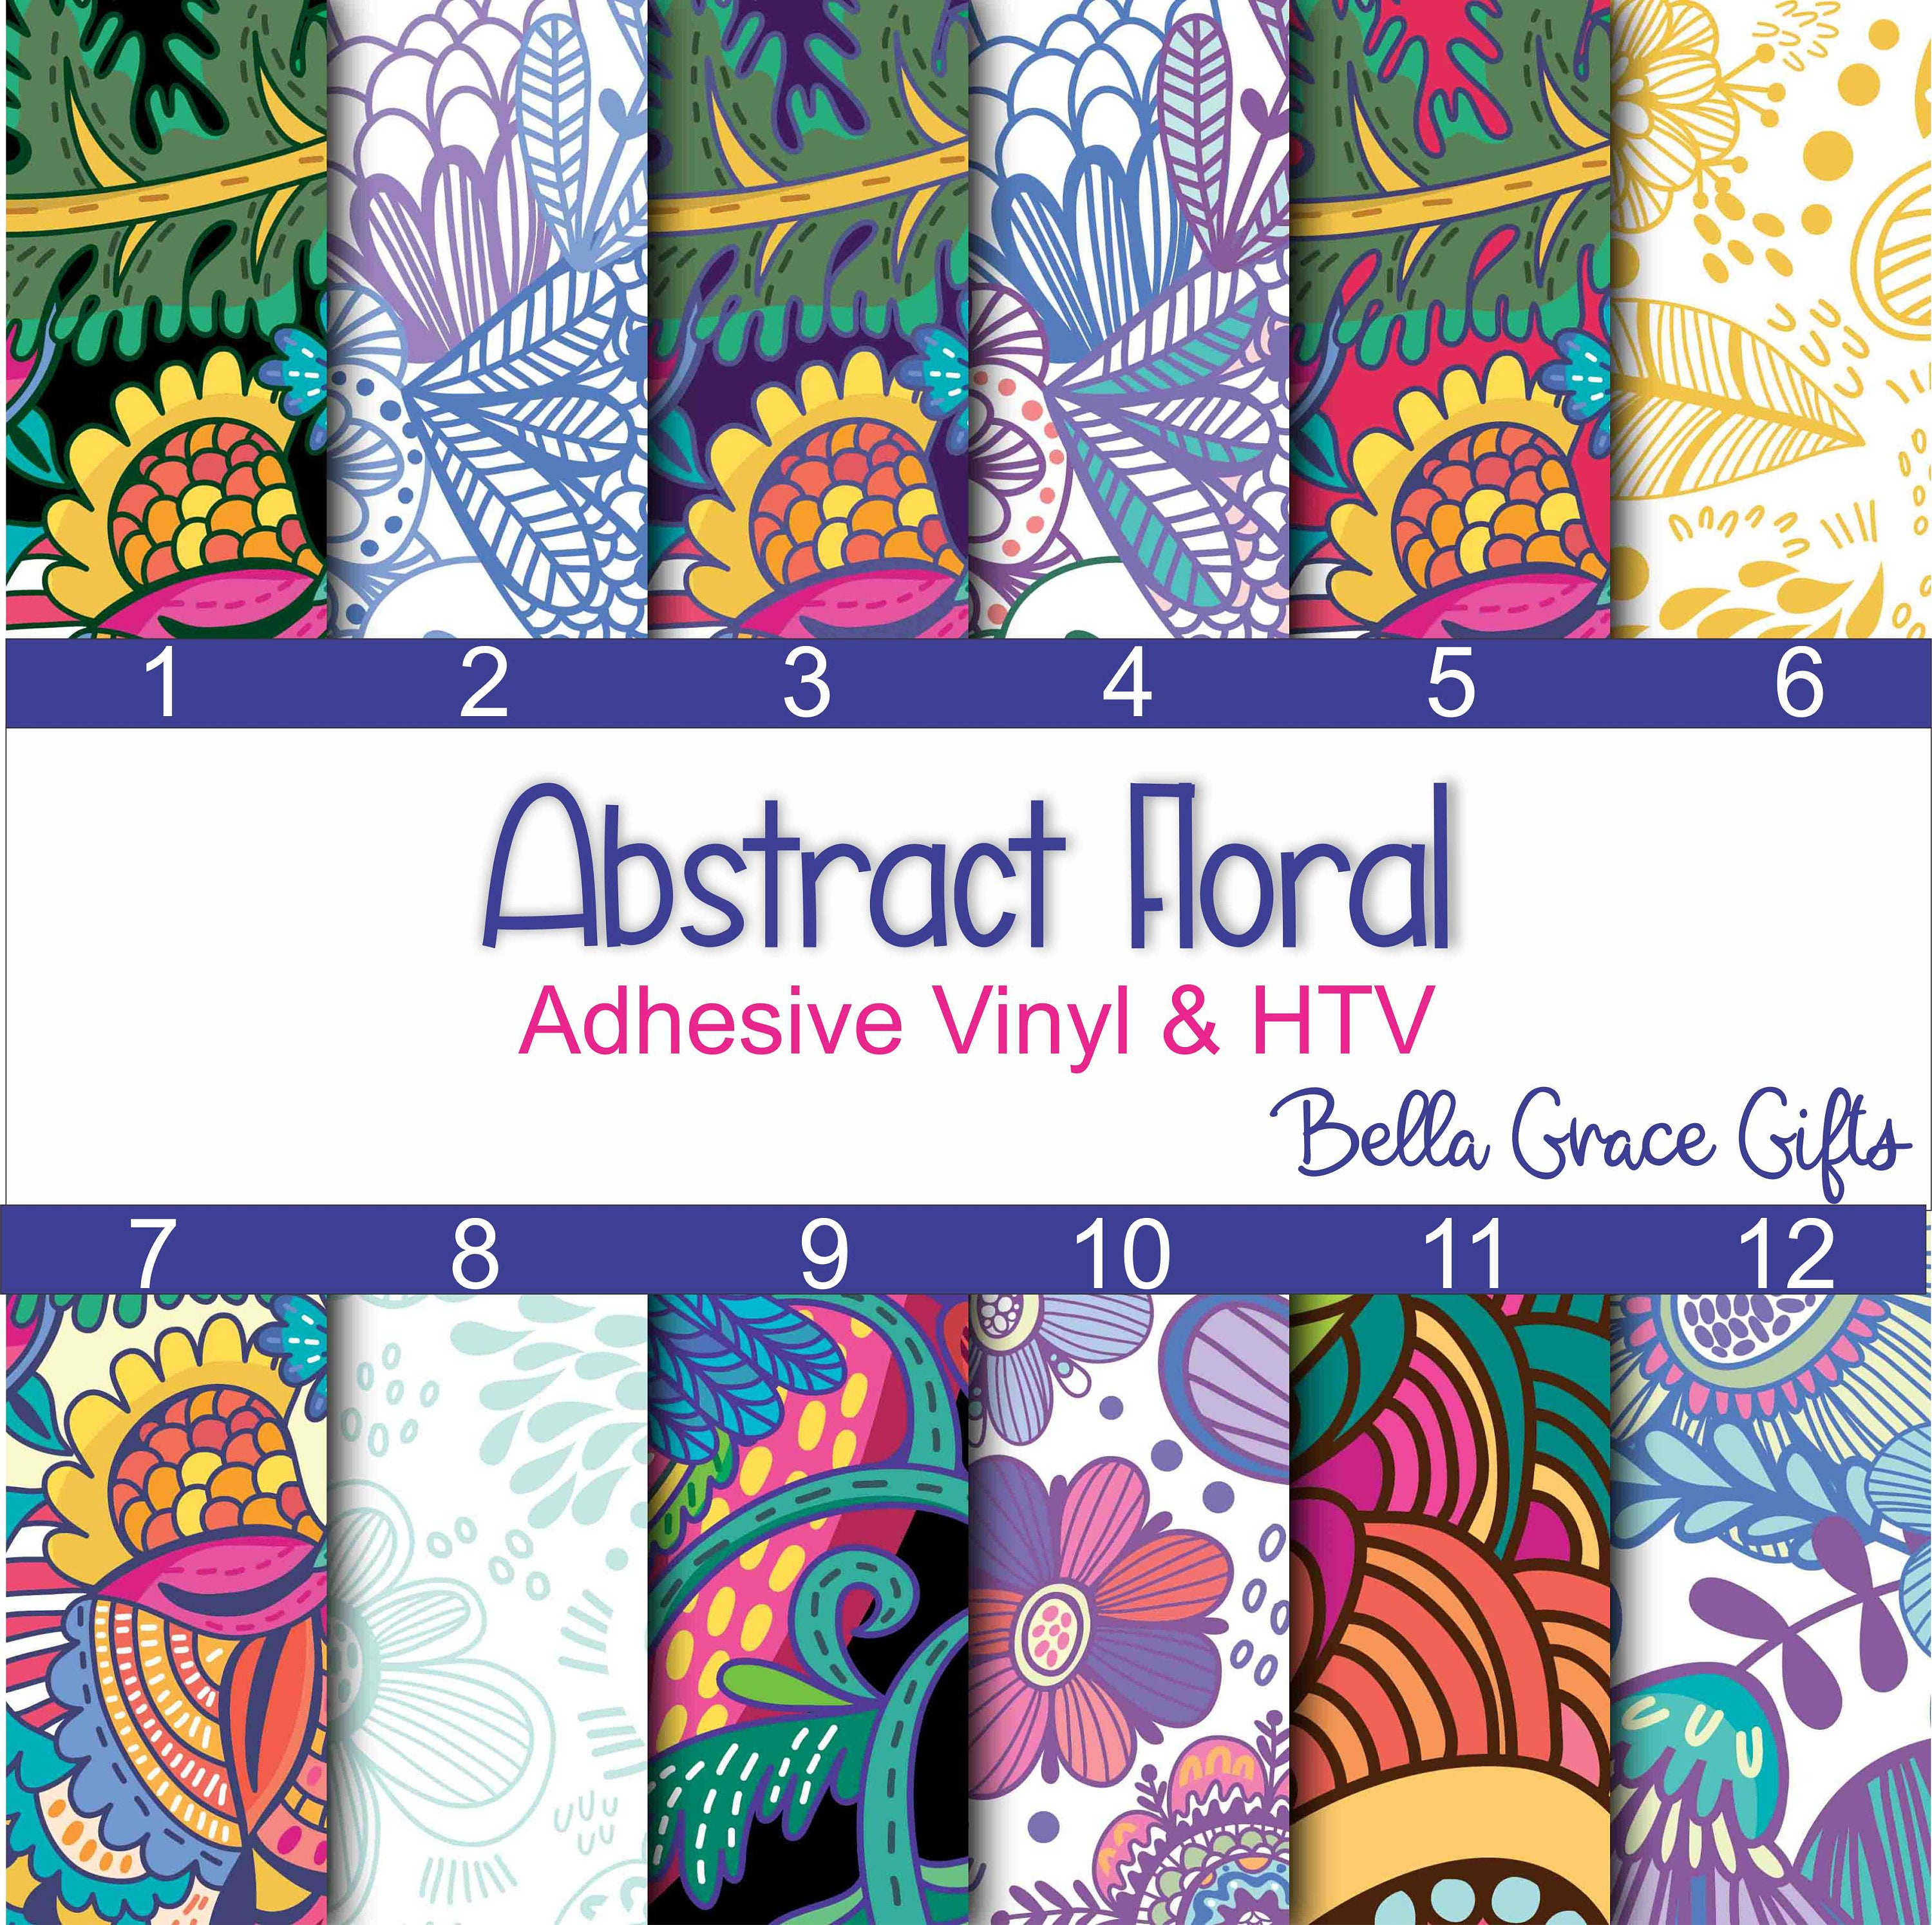 abstract floral patterned adhesive vinyl htv